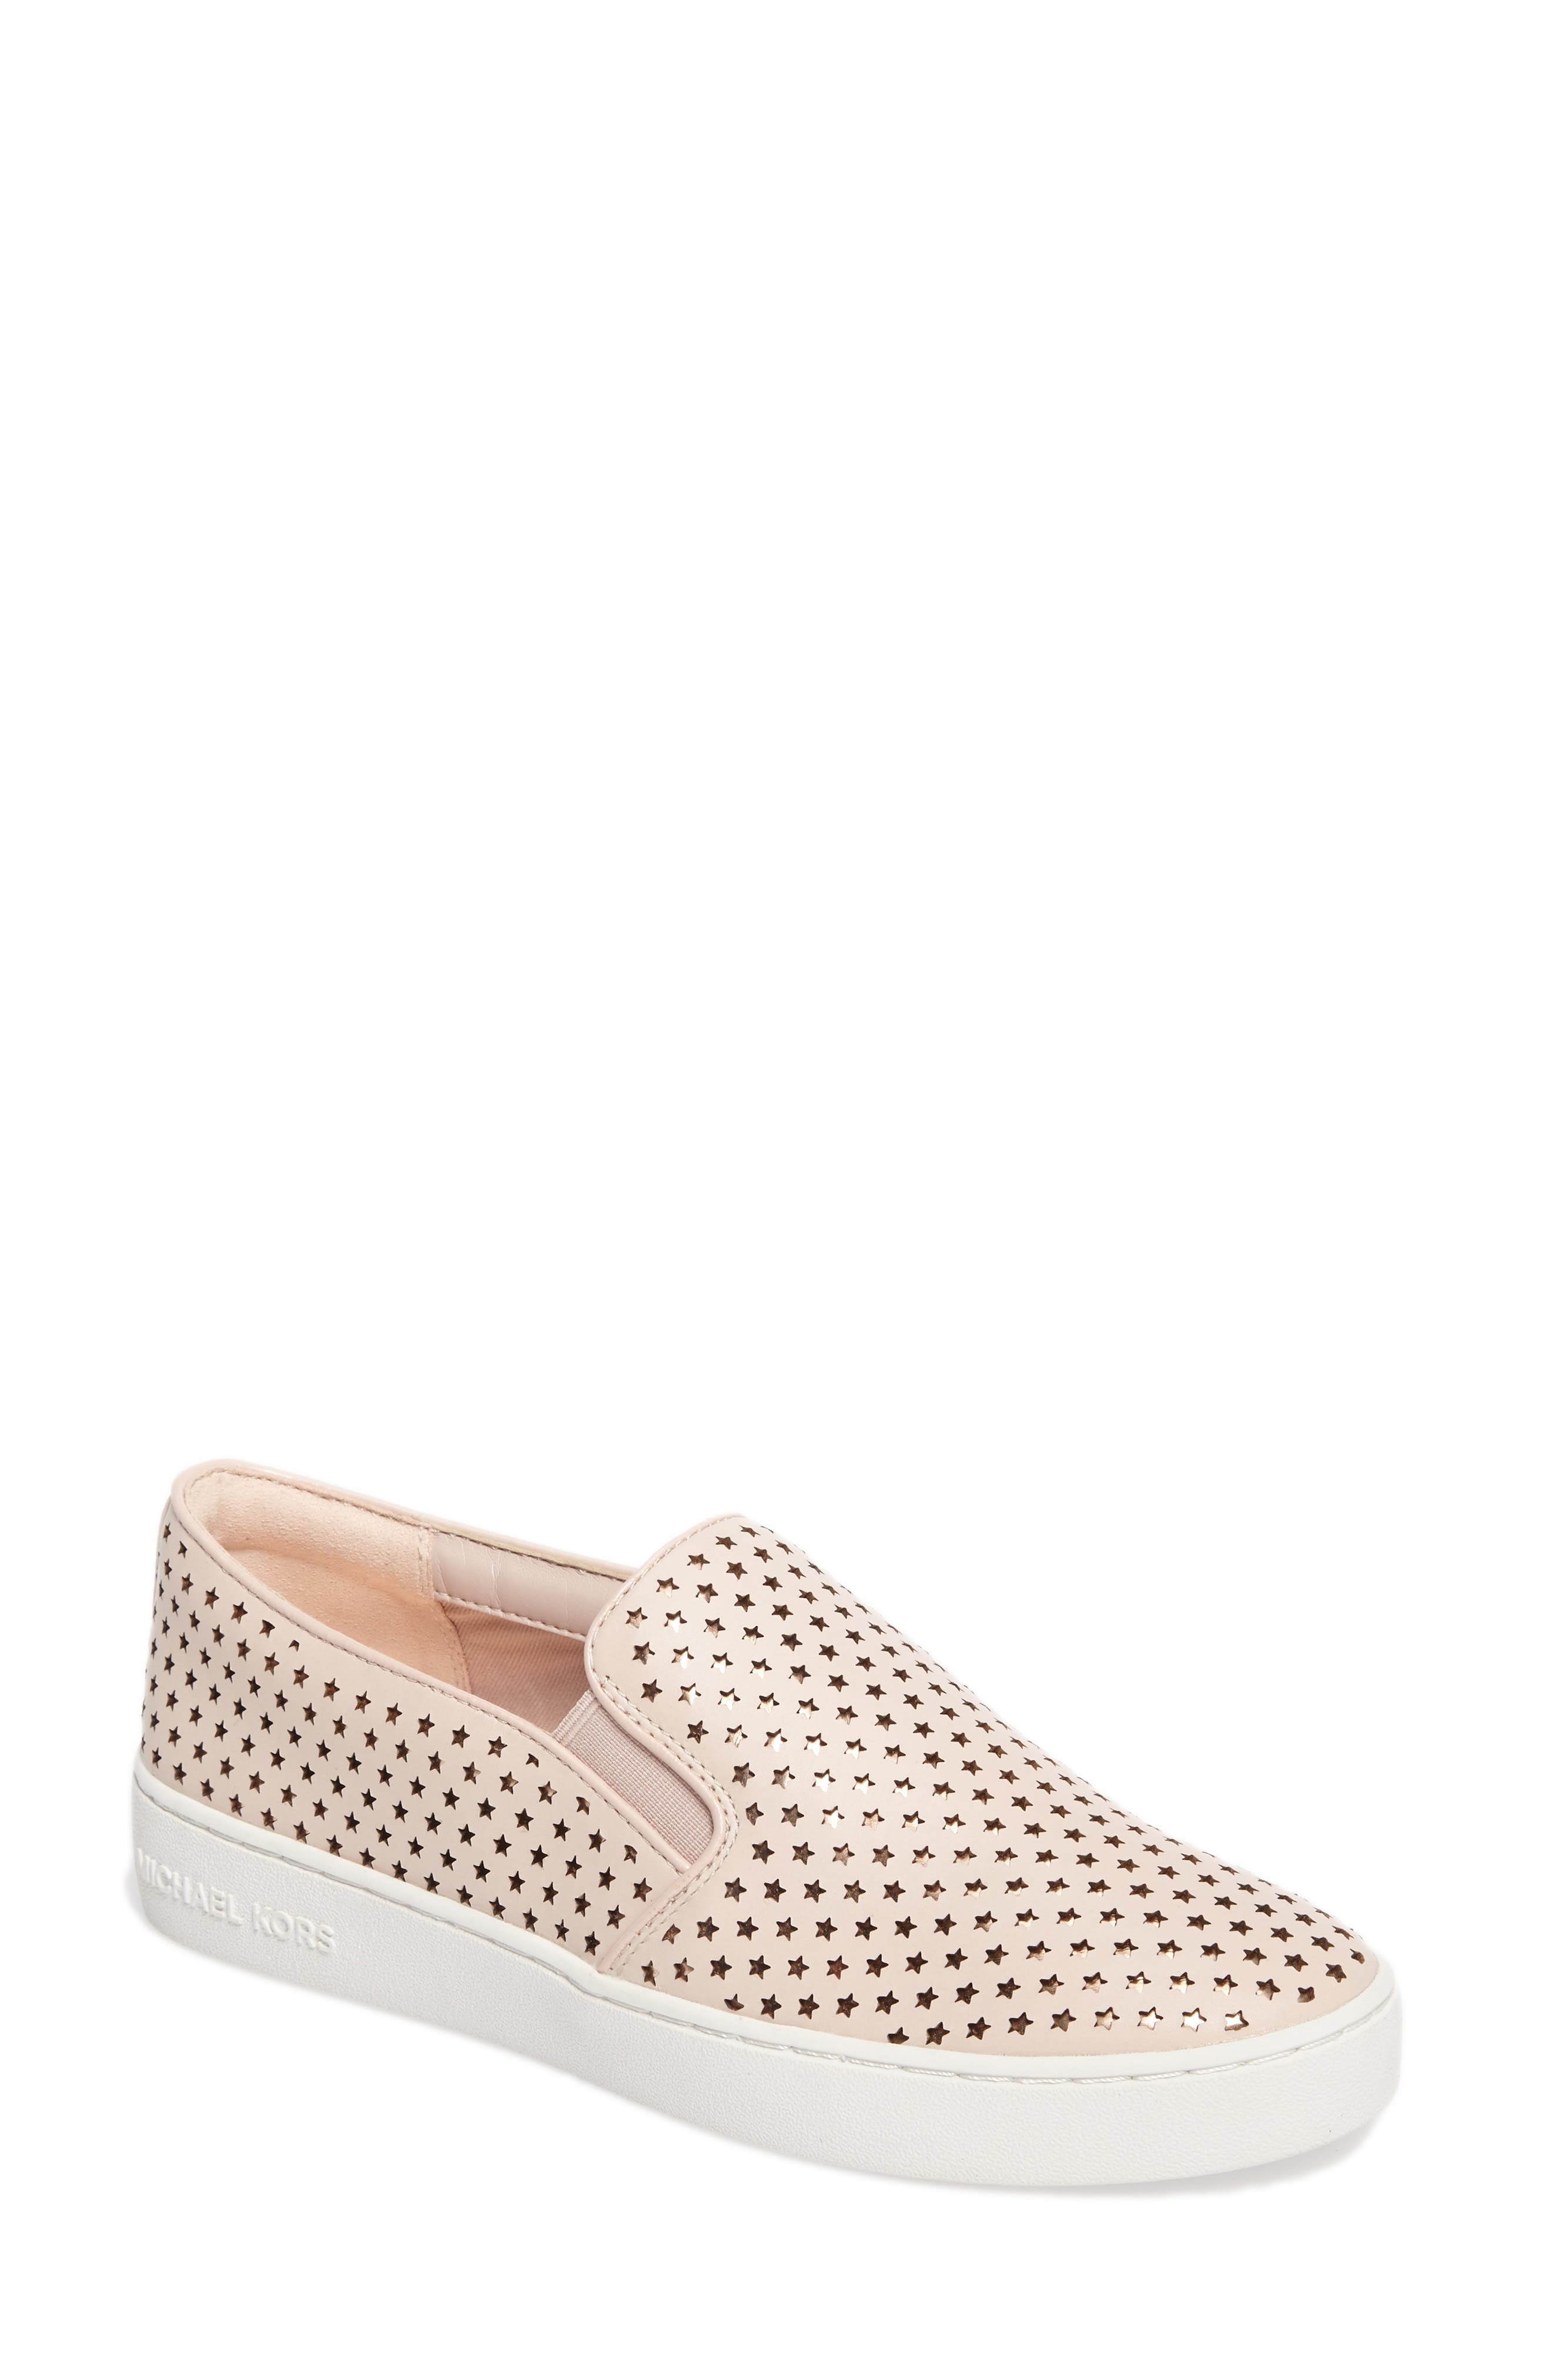 Main Image - MICHAEL Michael Kors Keaton Slip-On Sneaker (Women)